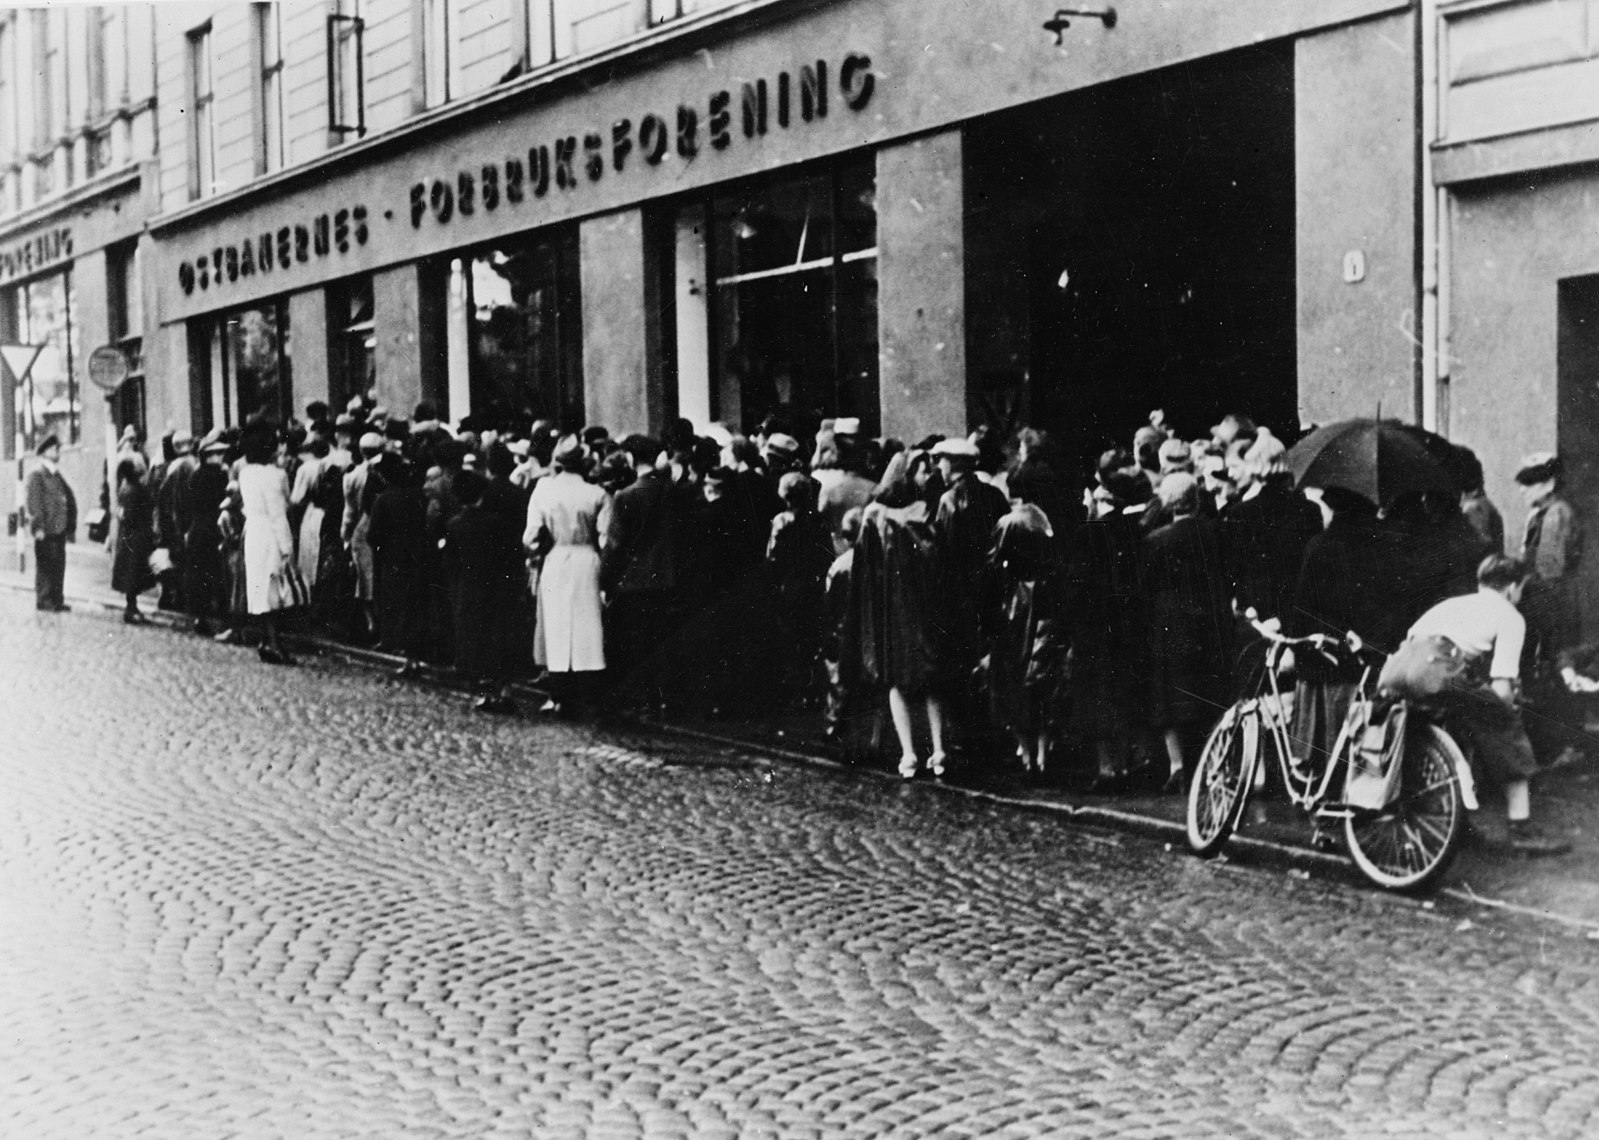 People waiting in line for food during WWII in Oslo, Norway.